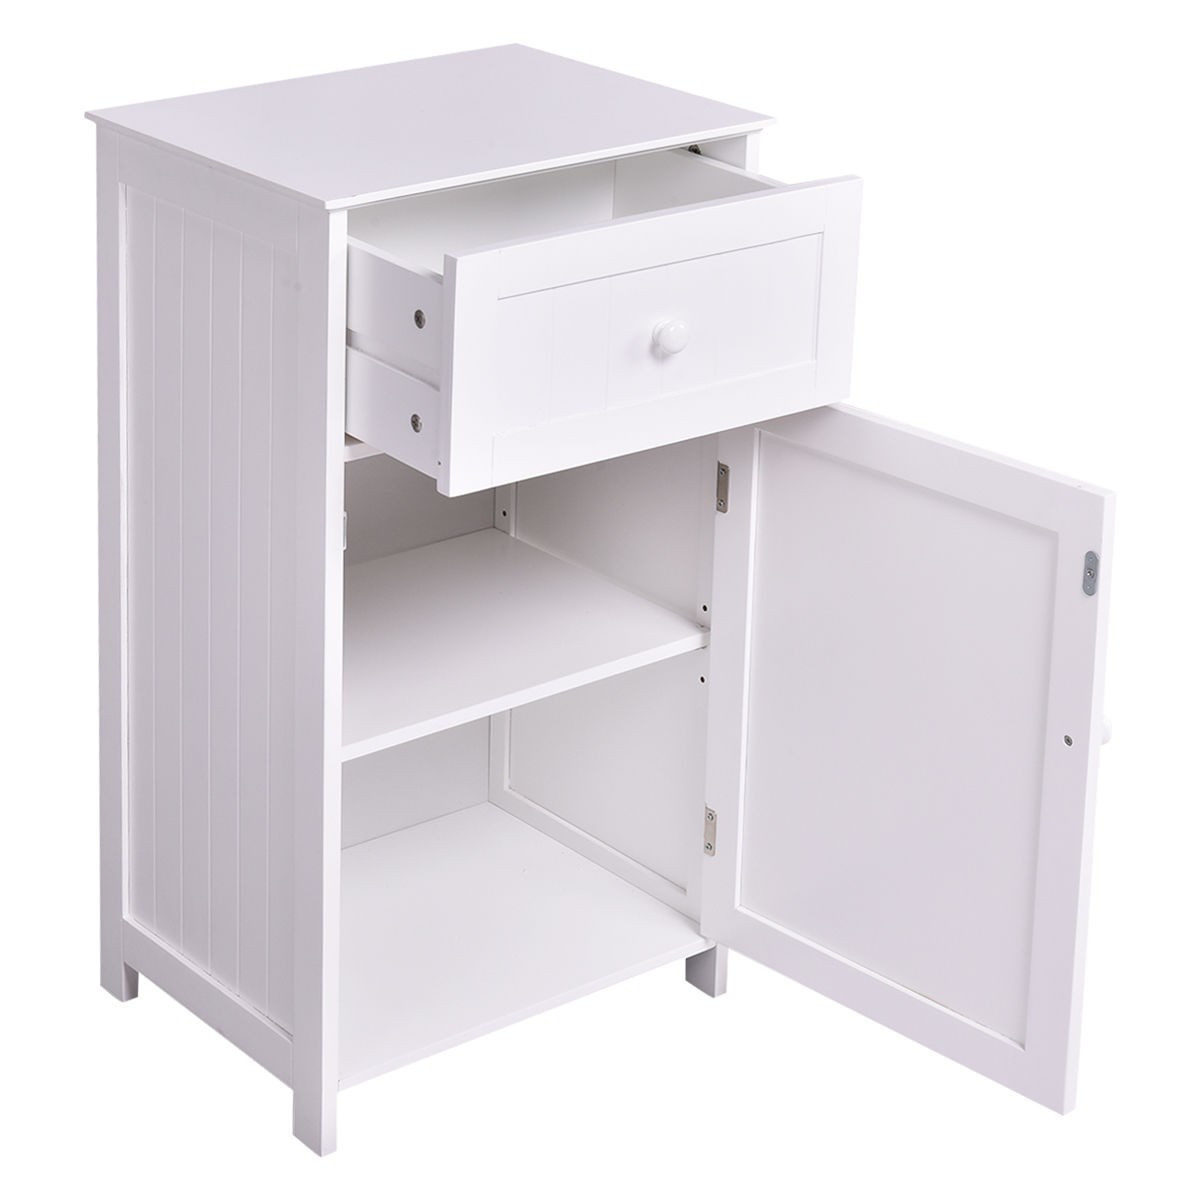 Best ideas about Bathroom Cabinet Storage . Save or Pin Kitchen Bathroom Storage Cabinet Floor Stand White Wood Now.